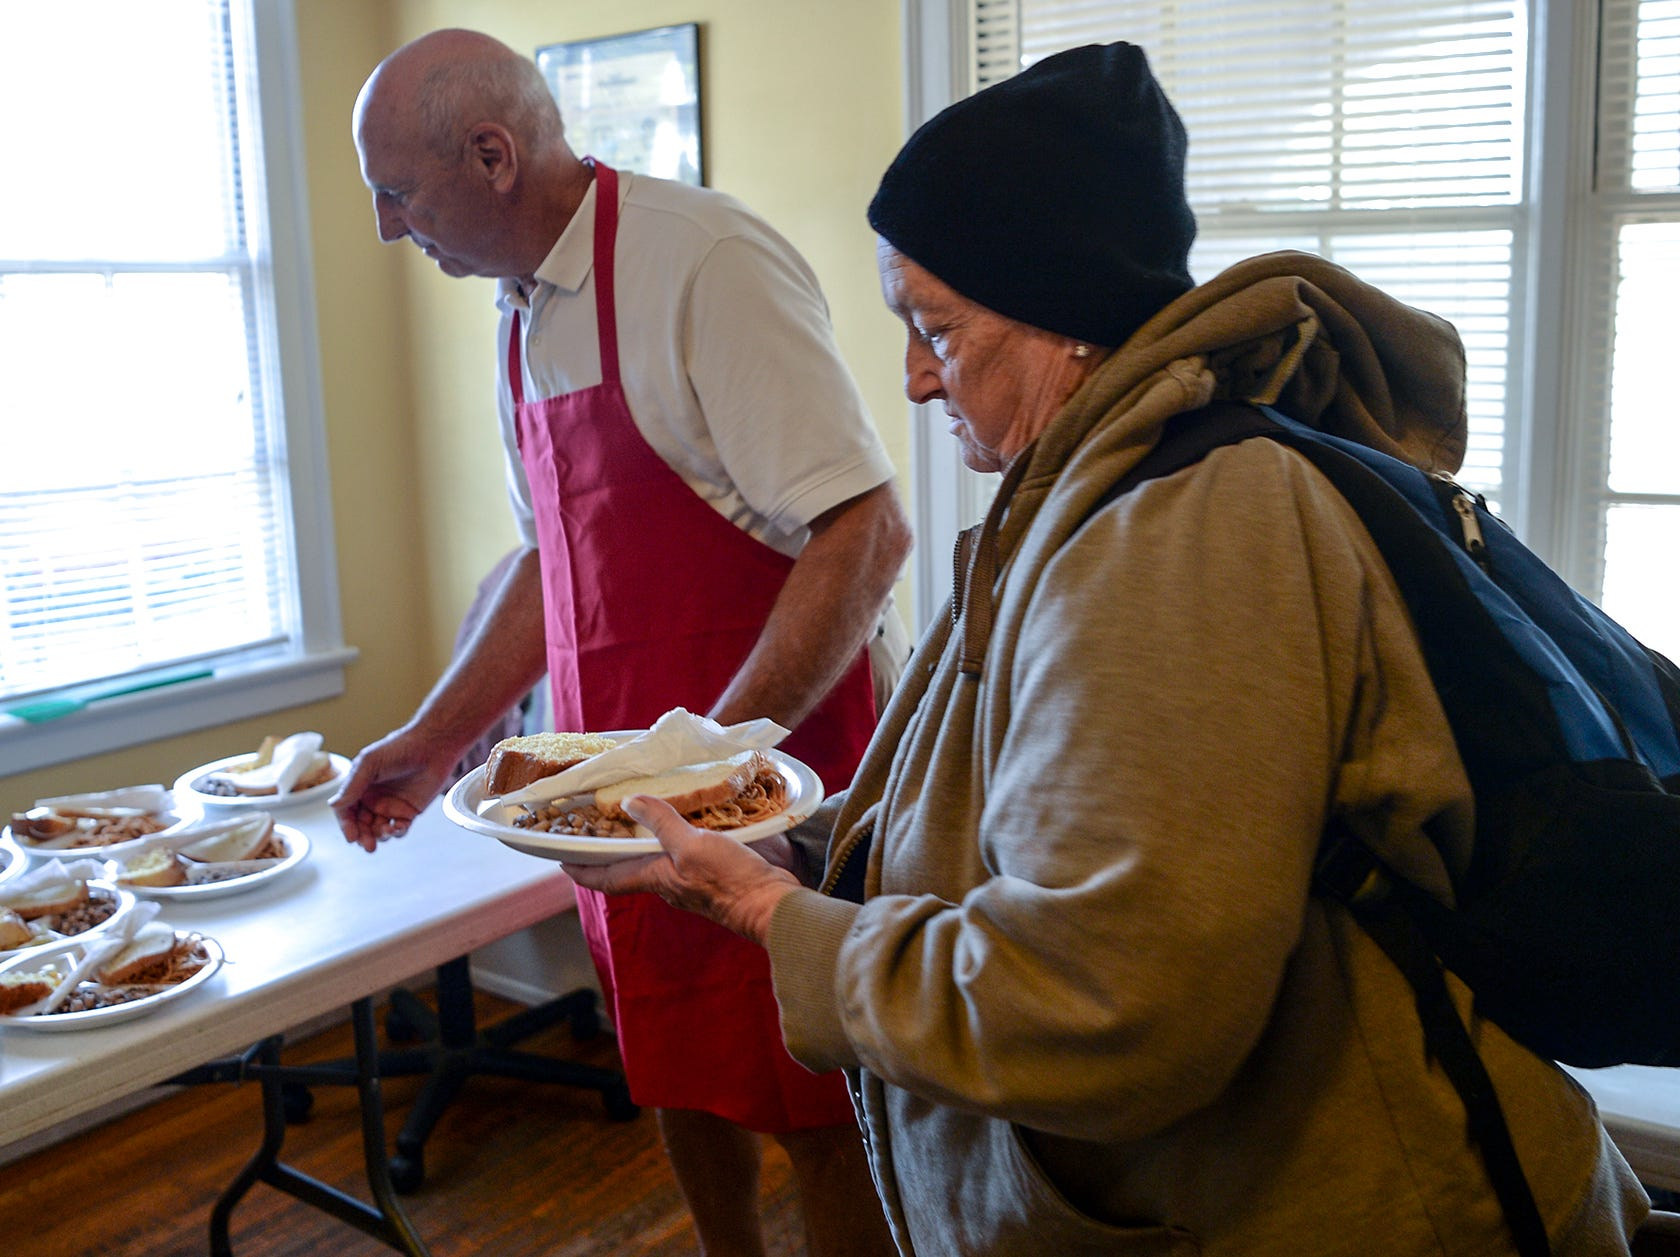 Sarah Nicholson, 65, of Anderson gets a plate of food from volunteer Rick Brosche of Anderson during her visit to the Anderson Soup Kitchen in November.